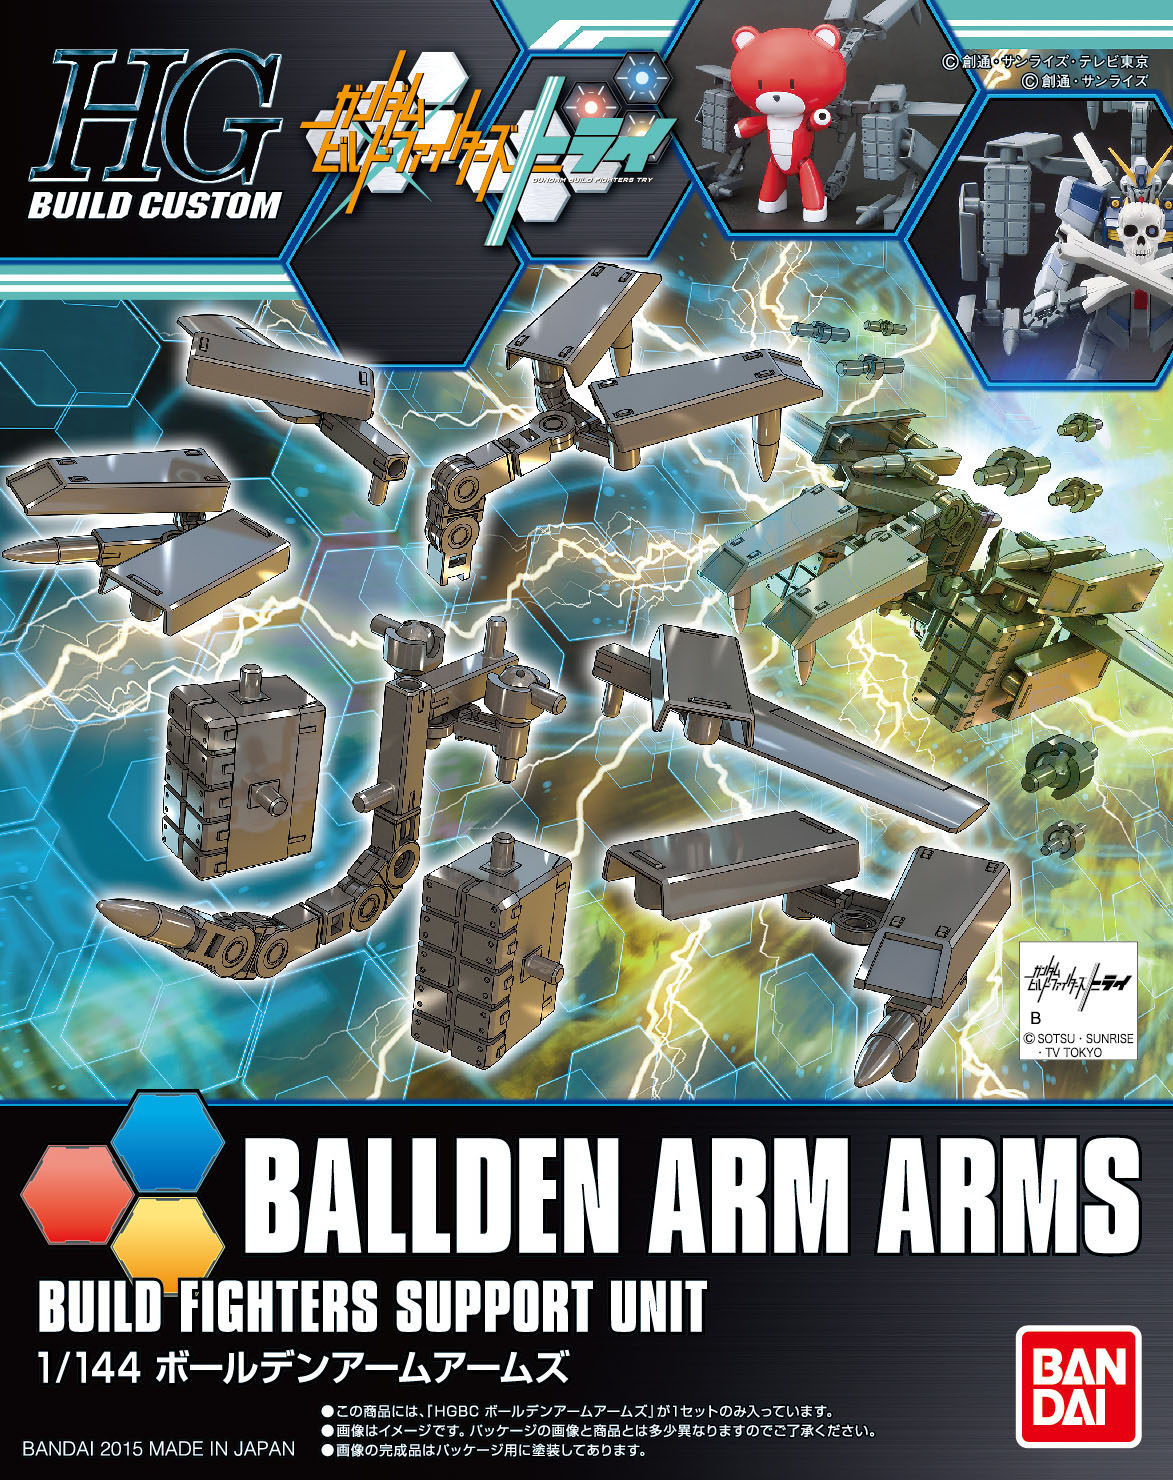 HGBC 1/144 ボールデンアームアームズ [Ballden Arm Arms]